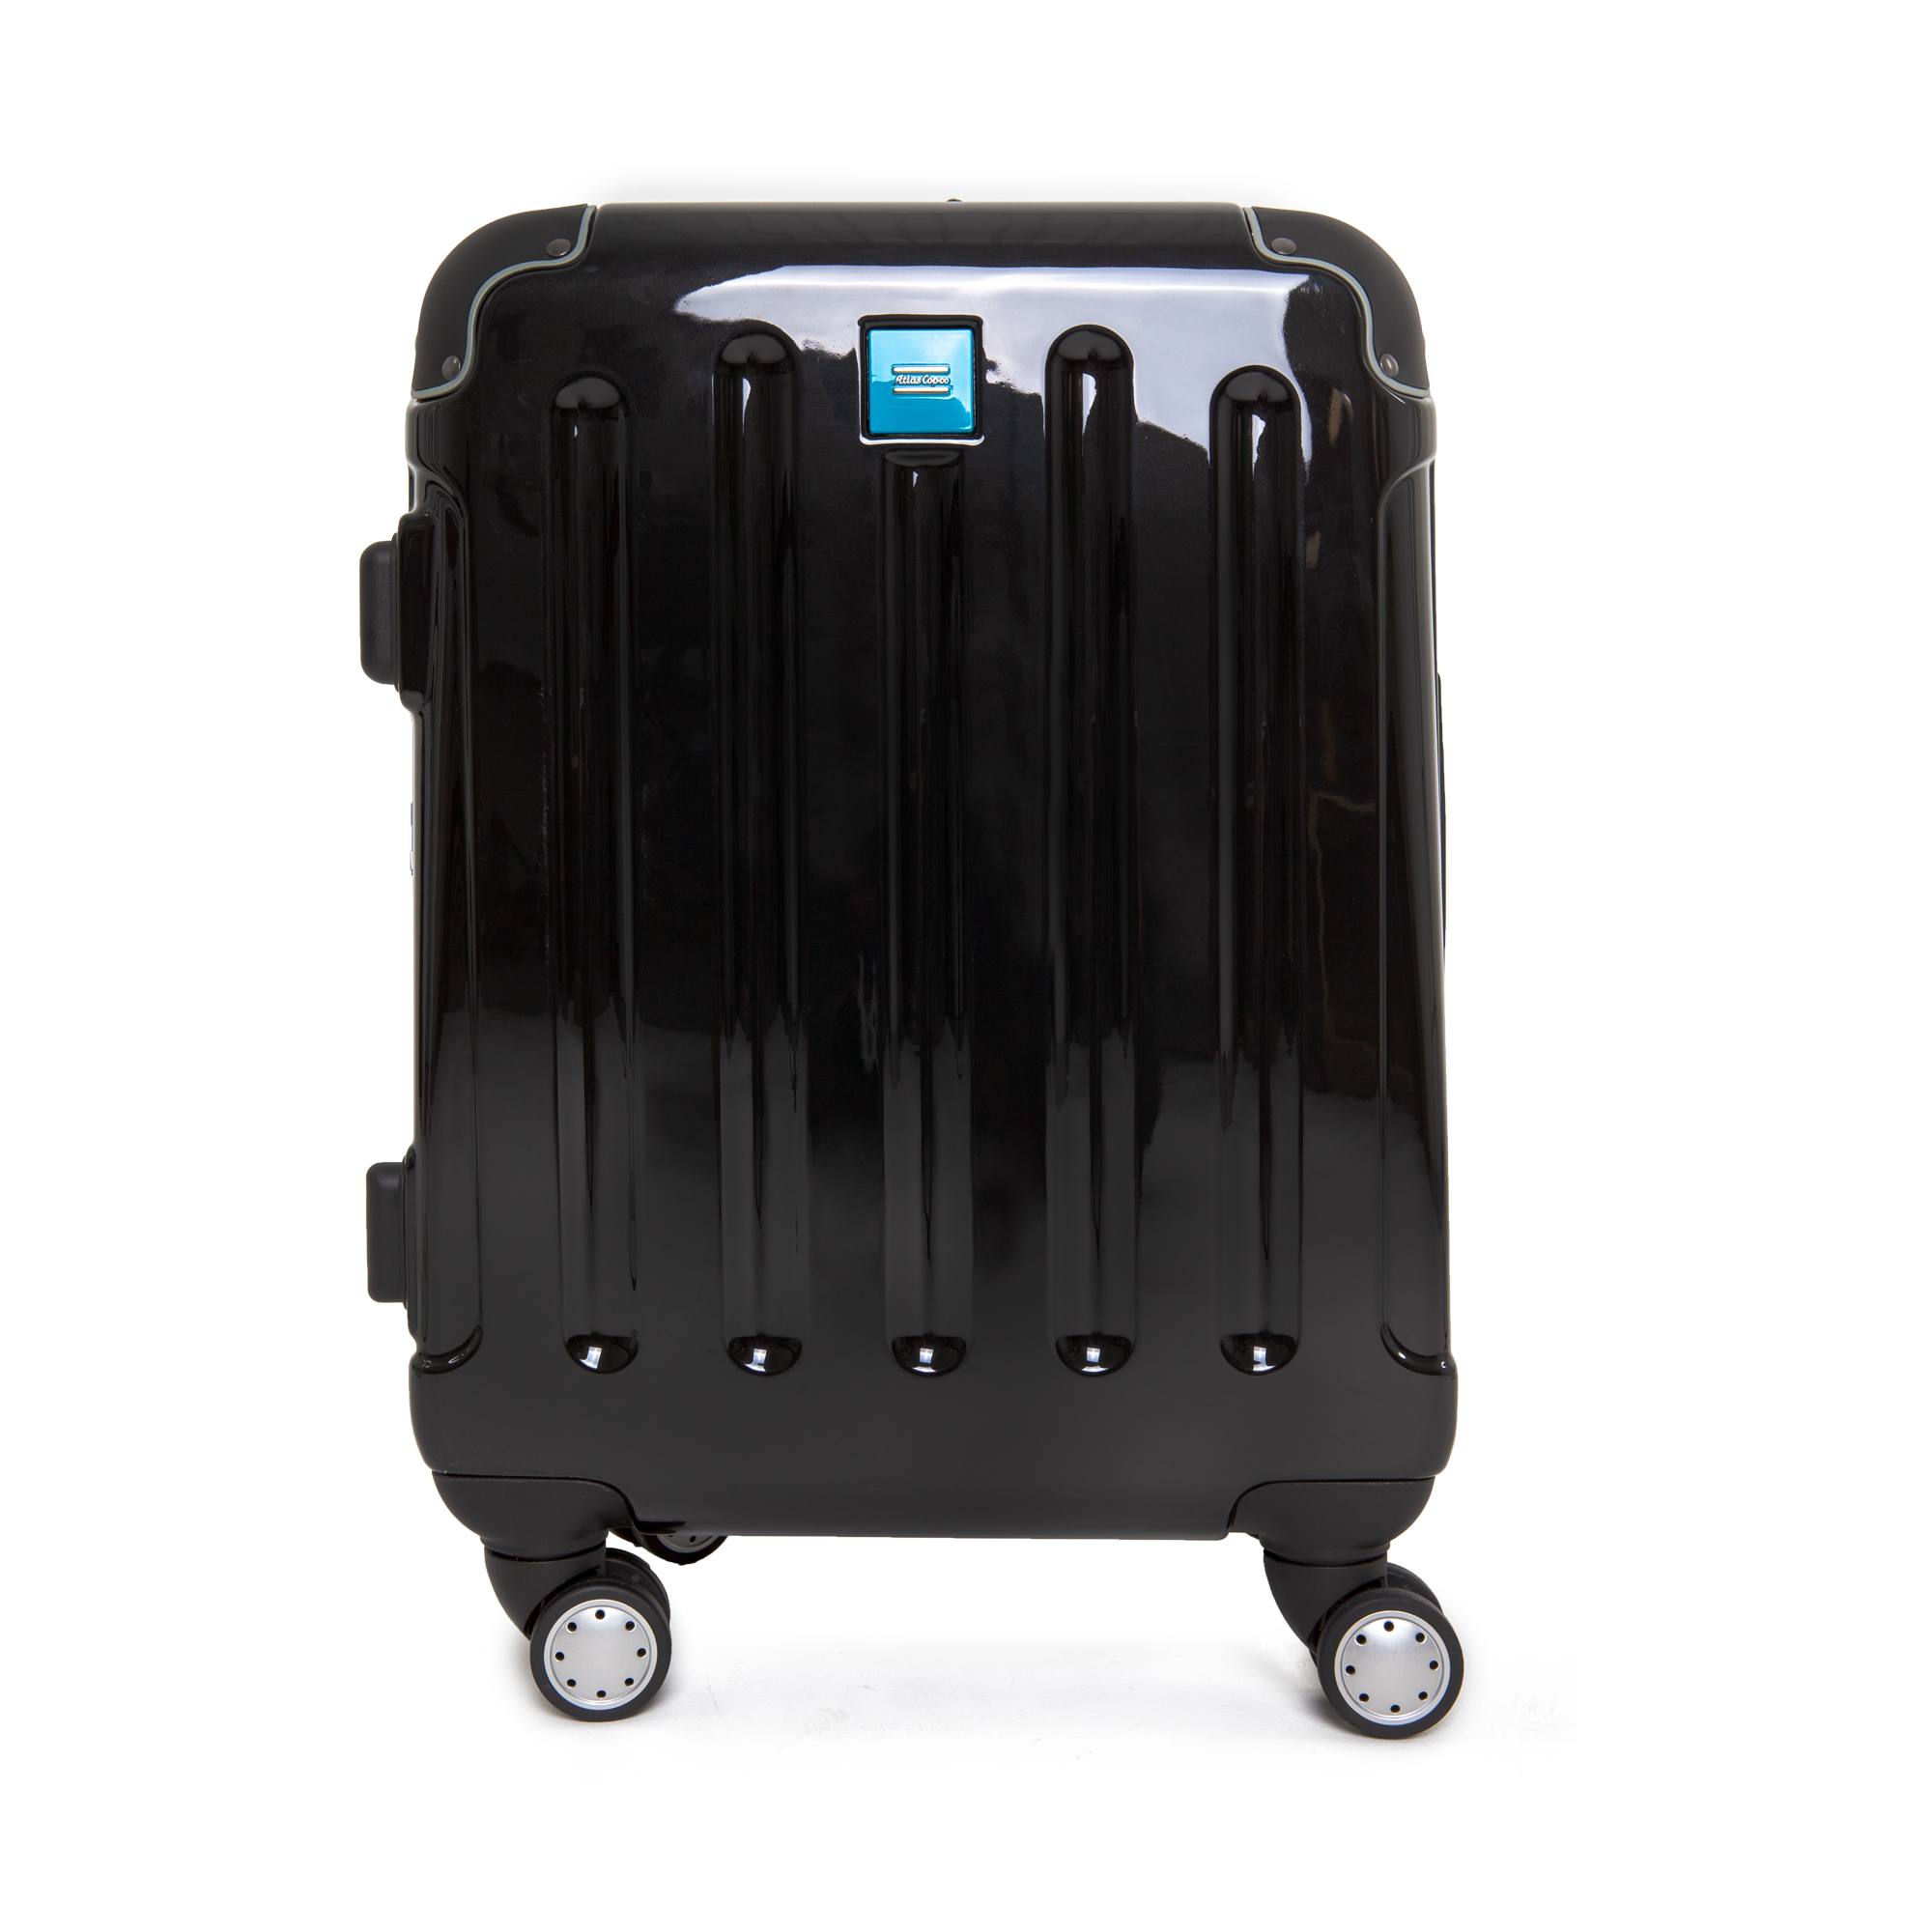 Protect your personal belongings when you travel with this hard shell trolley bag.